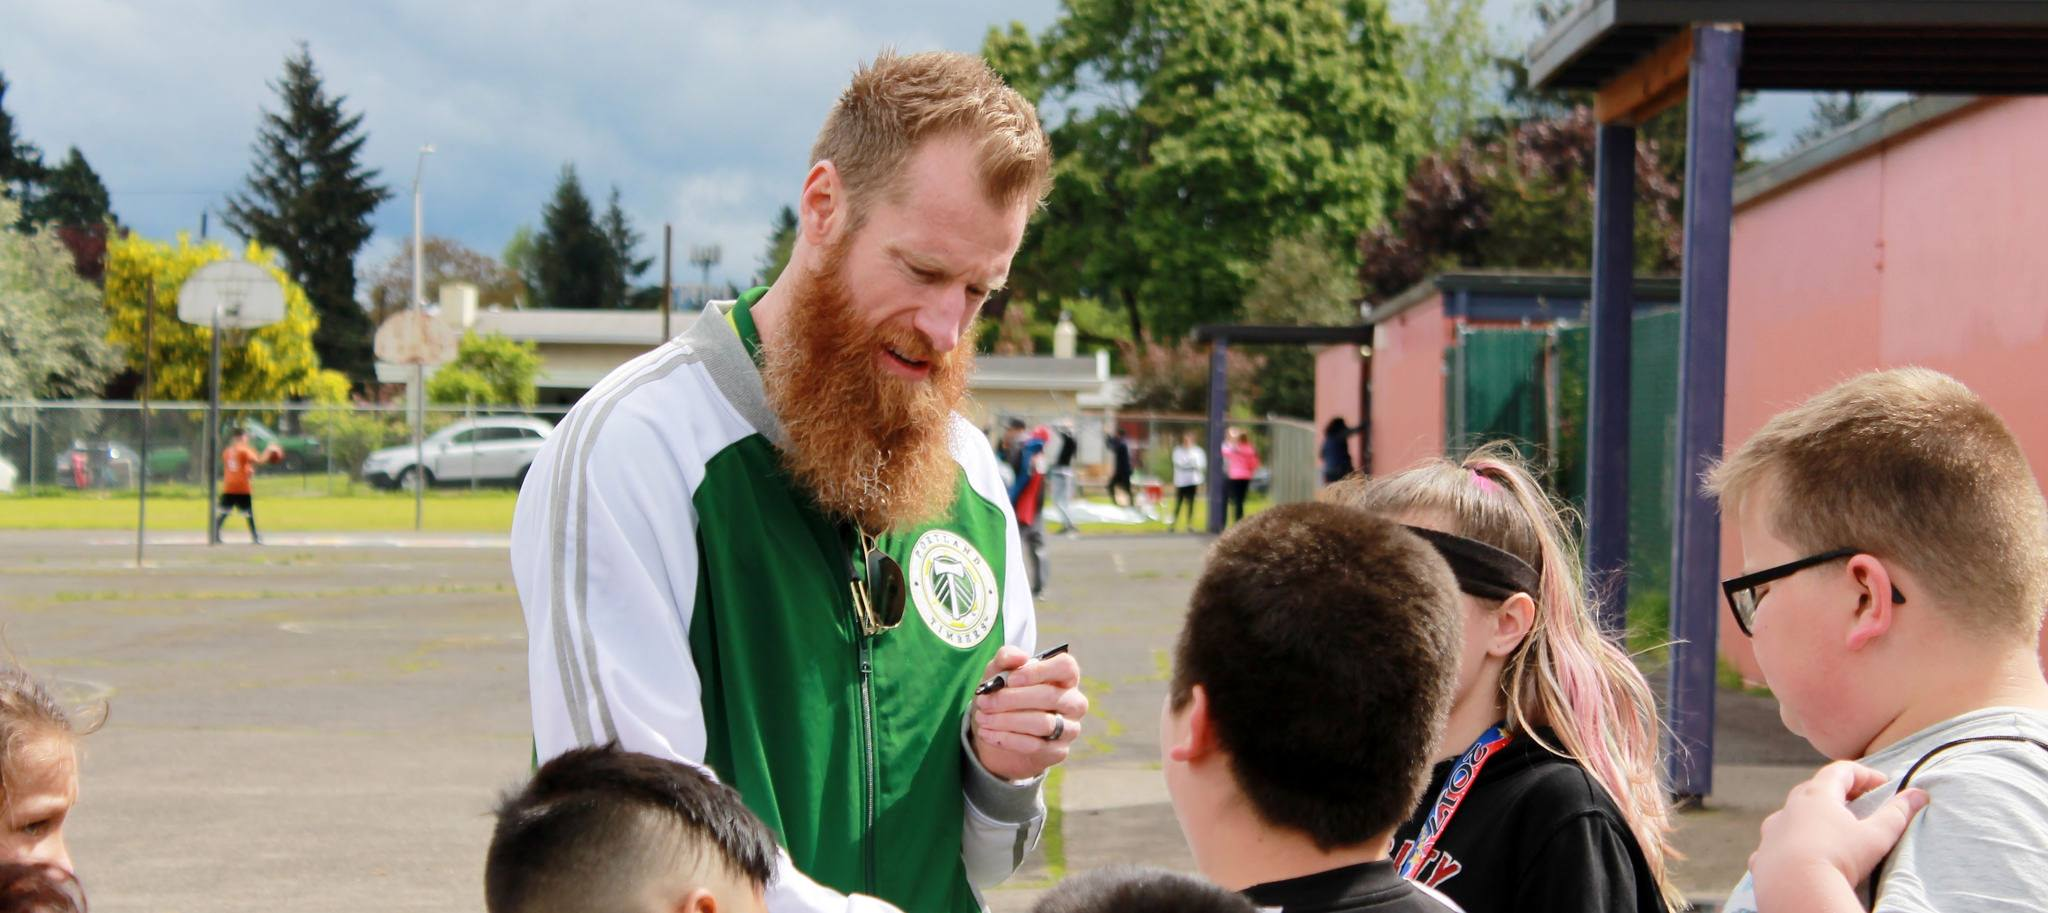 Community Cup - Nat Borchers of the Timbers